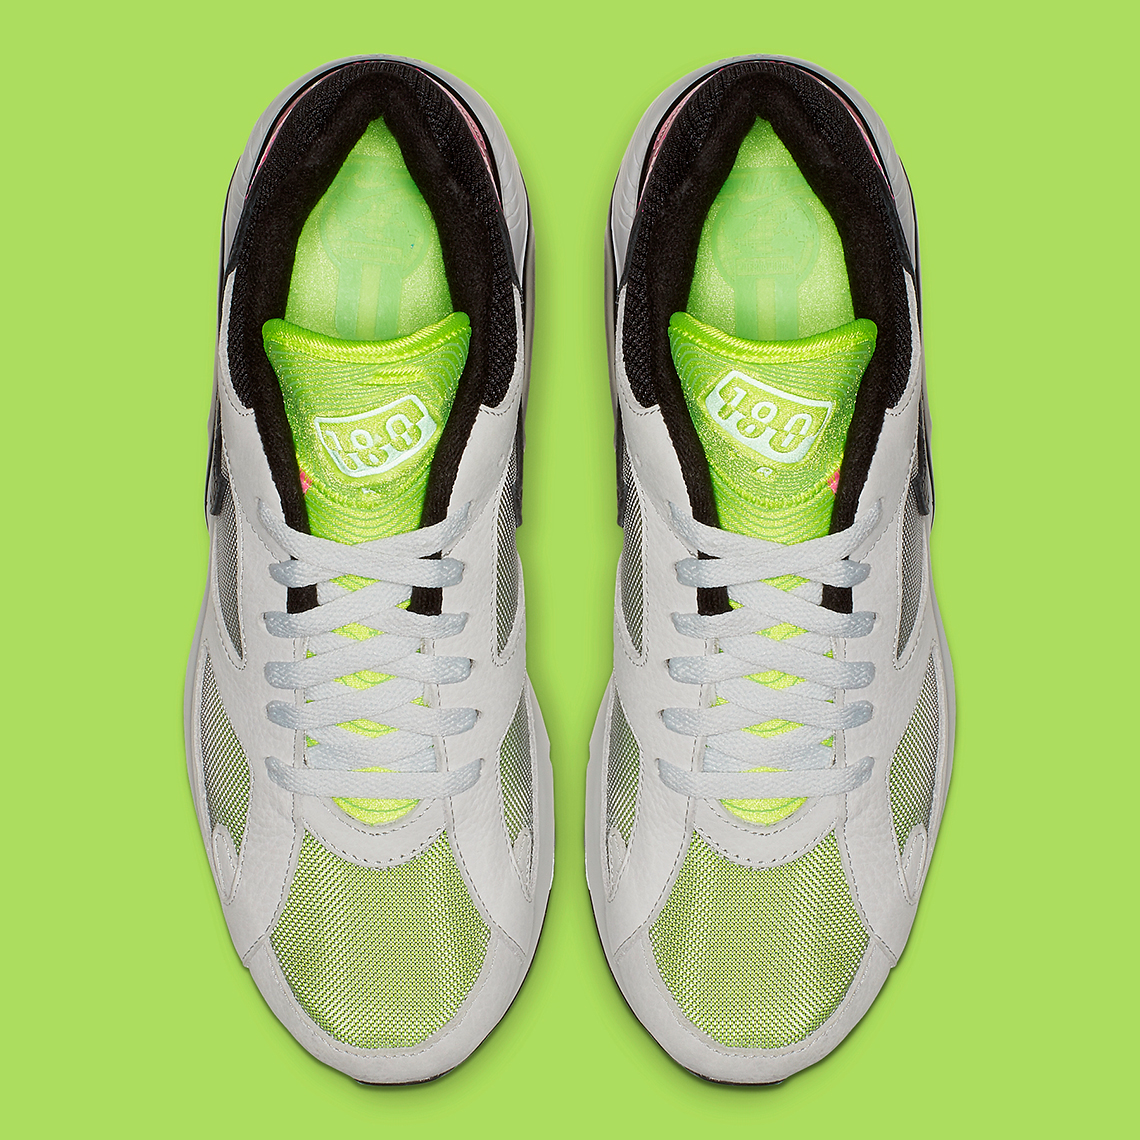 low priced 715a9 46899 Nike Air Max 180 Berlin BV7487-001 Release Date   SneakerNews.com